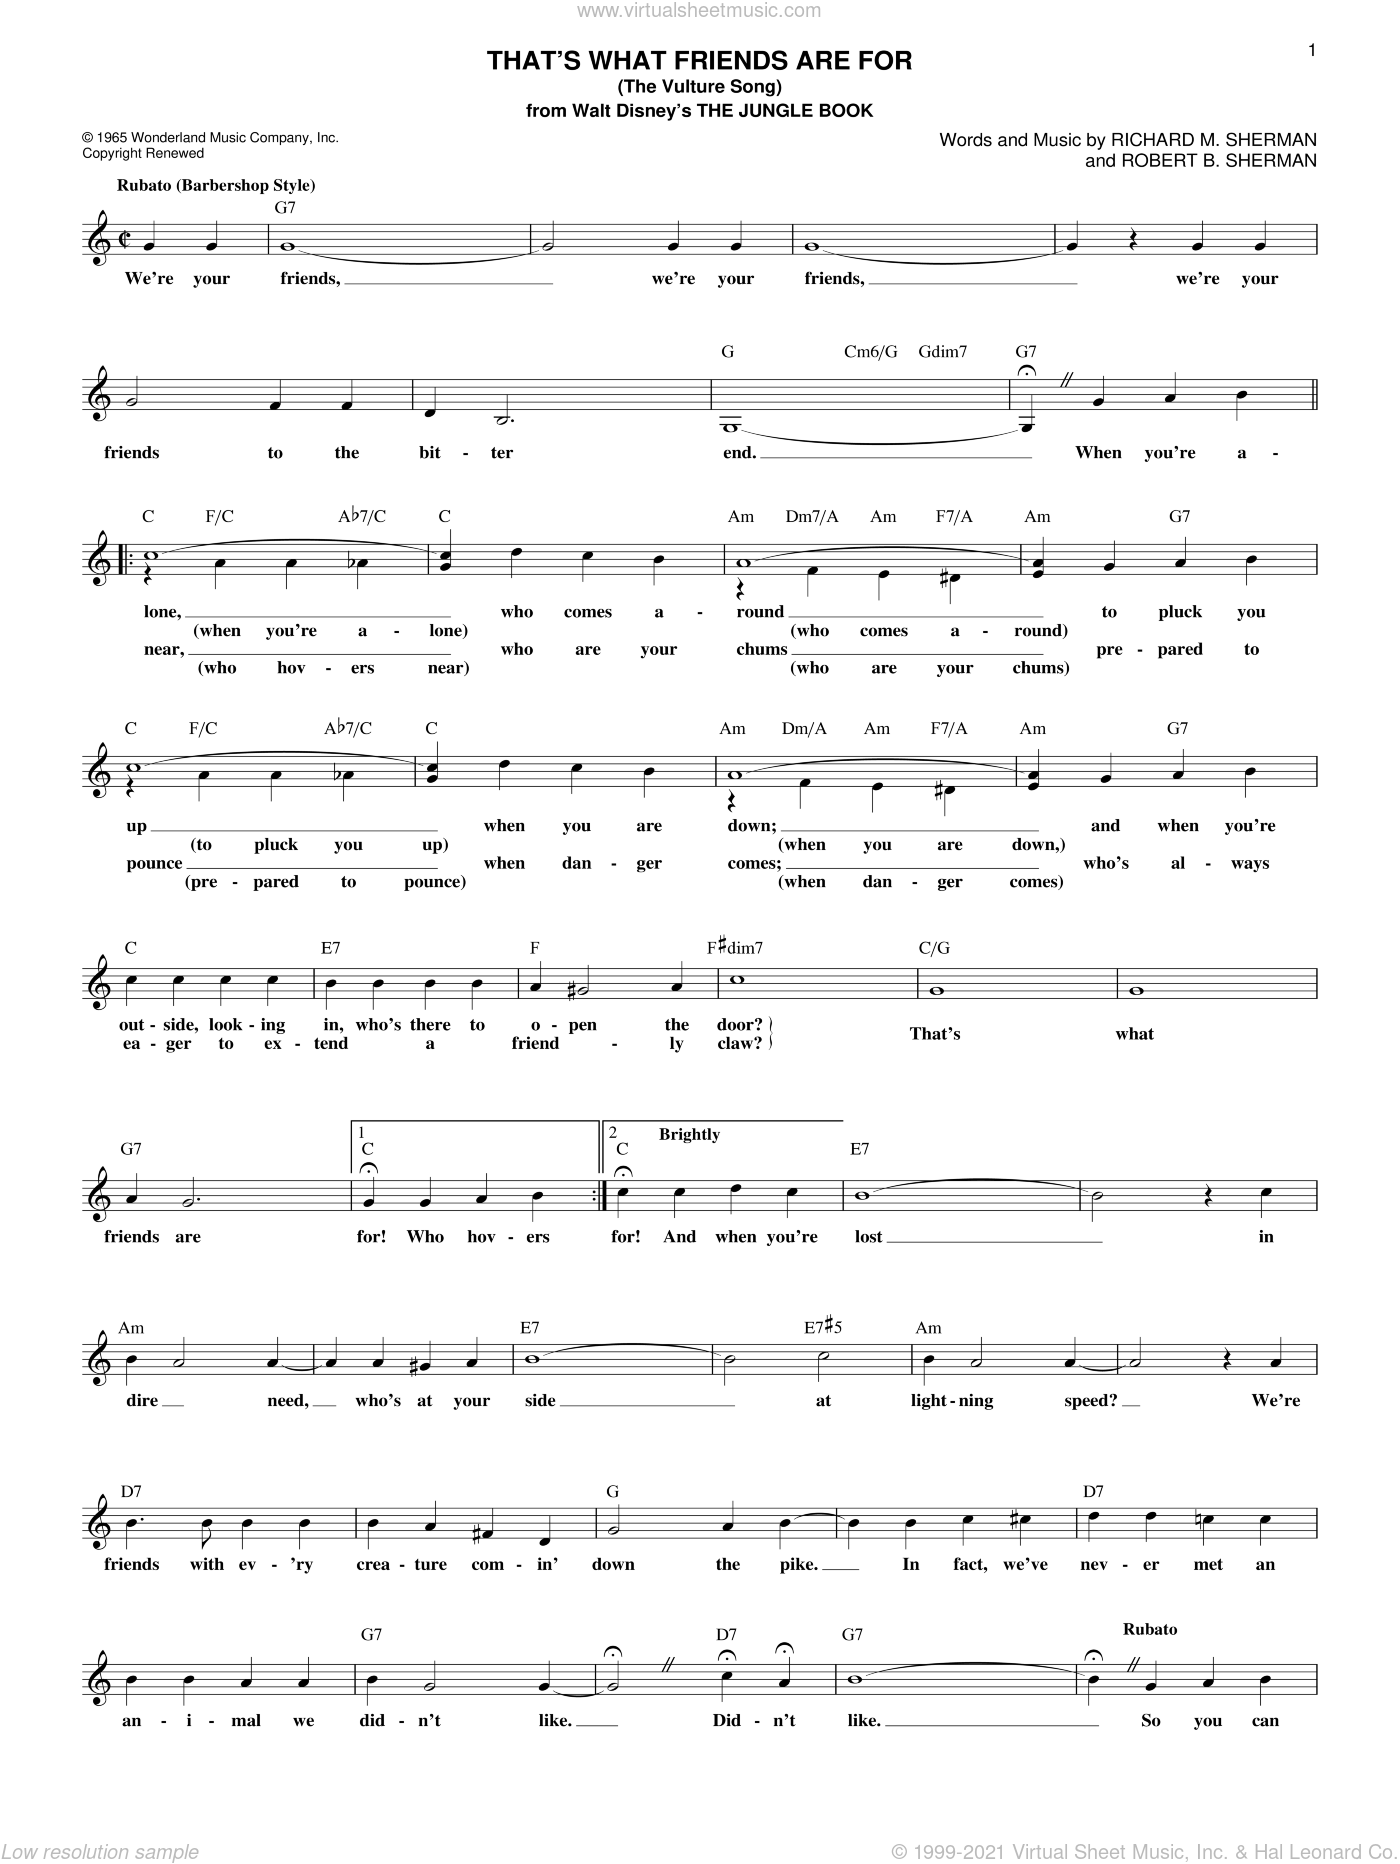 That's What Friends Are For (The Vulture Song) sheet music for voice and other instruments (fake book) by Richard M. Sherman and Robert B. Sherman, intermediate skill level